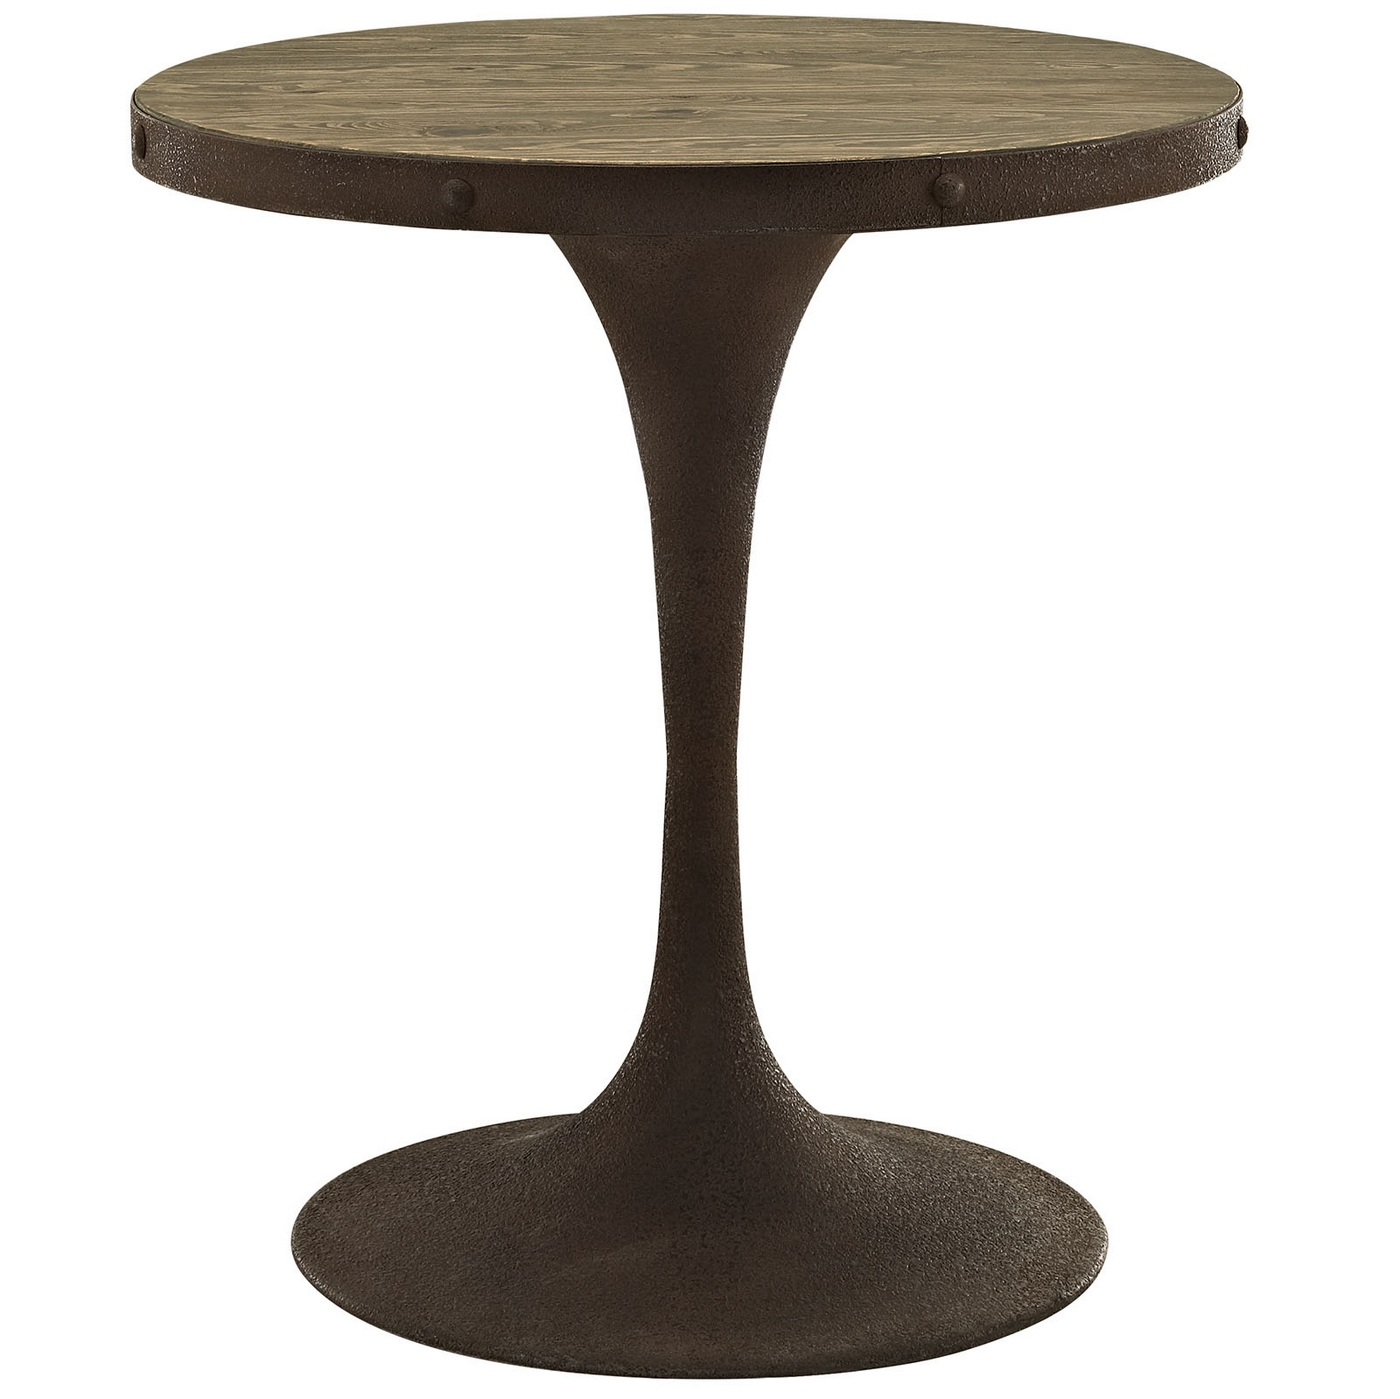 Douglas round dining table rustic finish achica - Benchwright